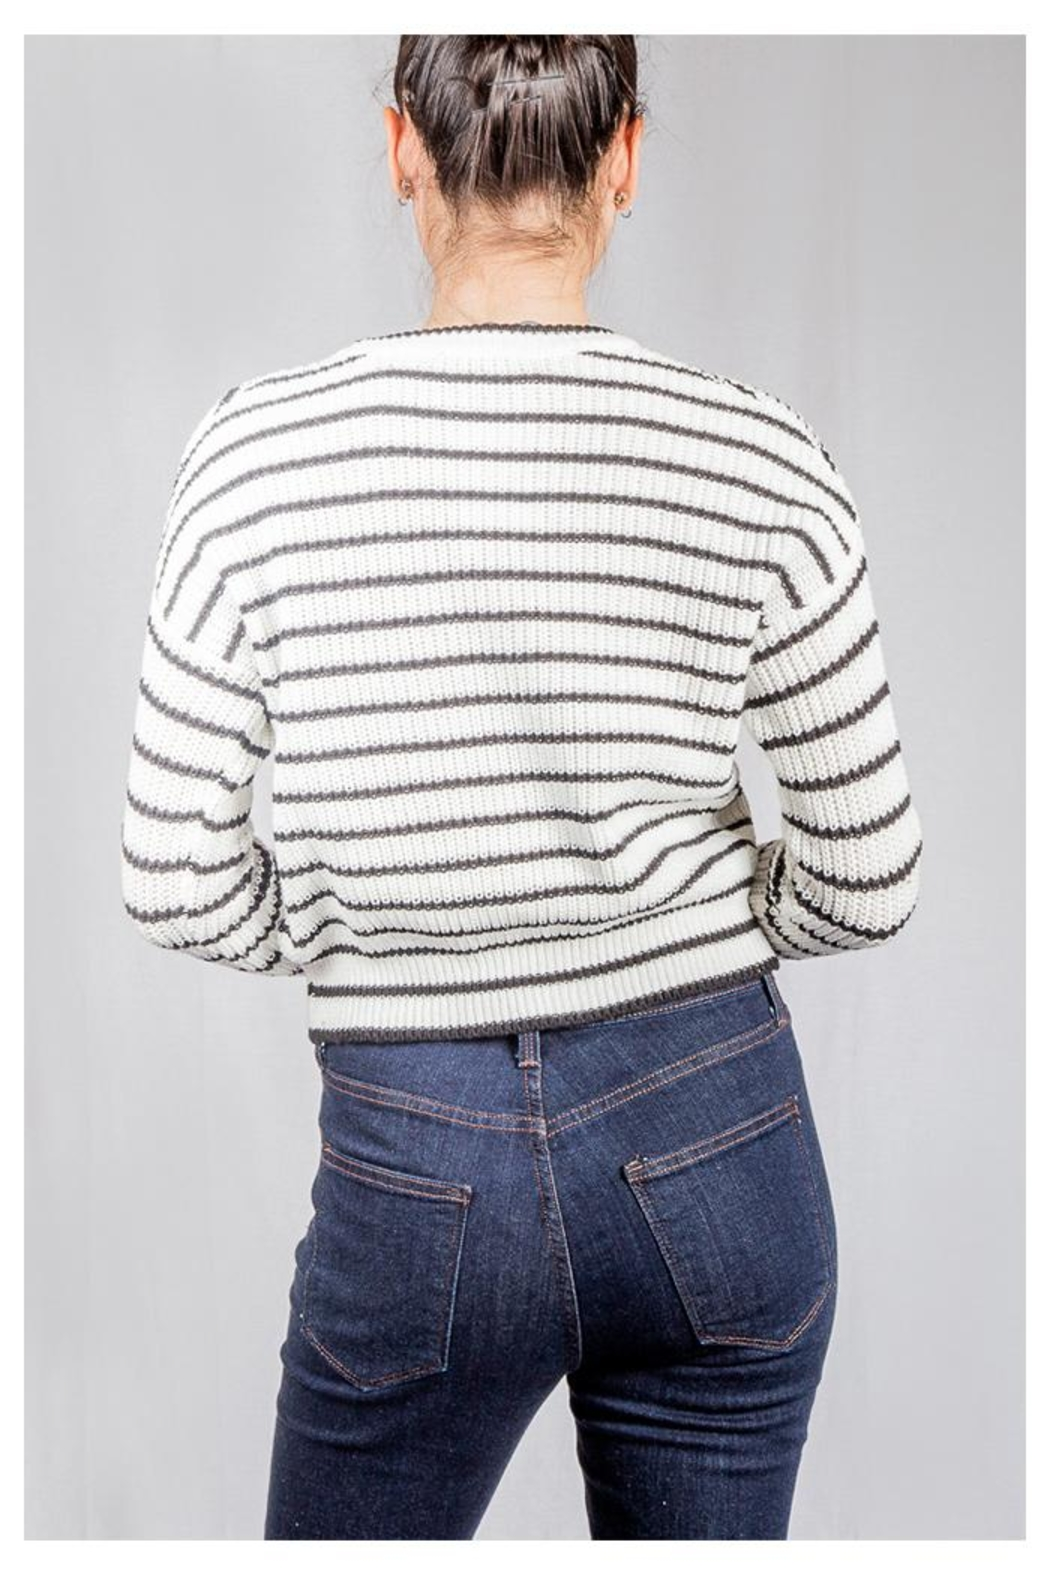 Audrey 3+1 Striped Knit Sweater - Back Cropped Image